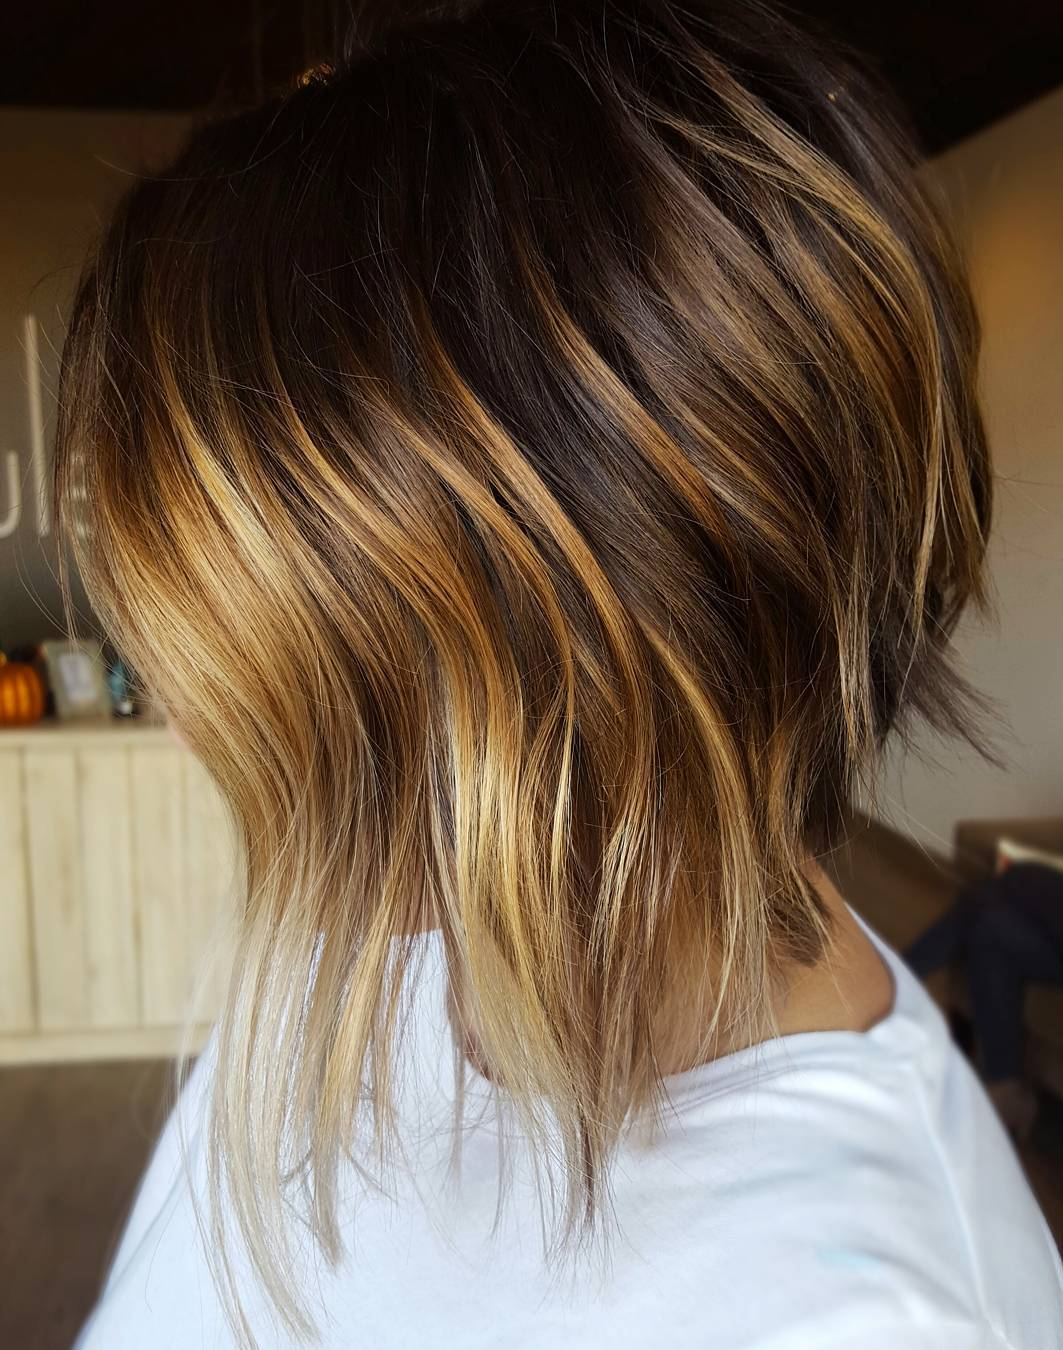 Inverted Brown Bob with Golden Face Framing Highlights